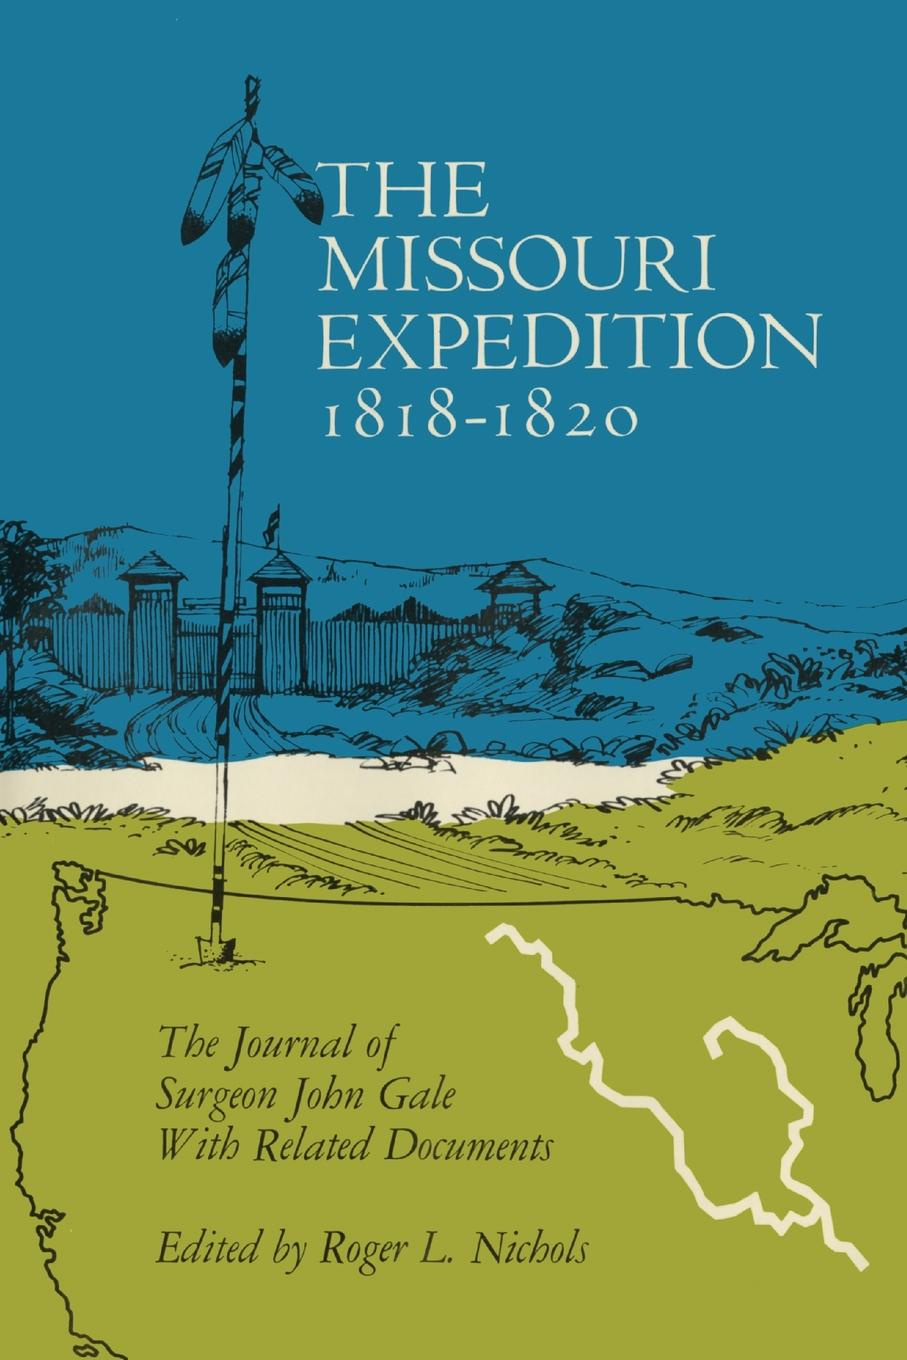 John Gale The Missouri Expedition 1818-1820. Journal of Surgeon and Related Documents